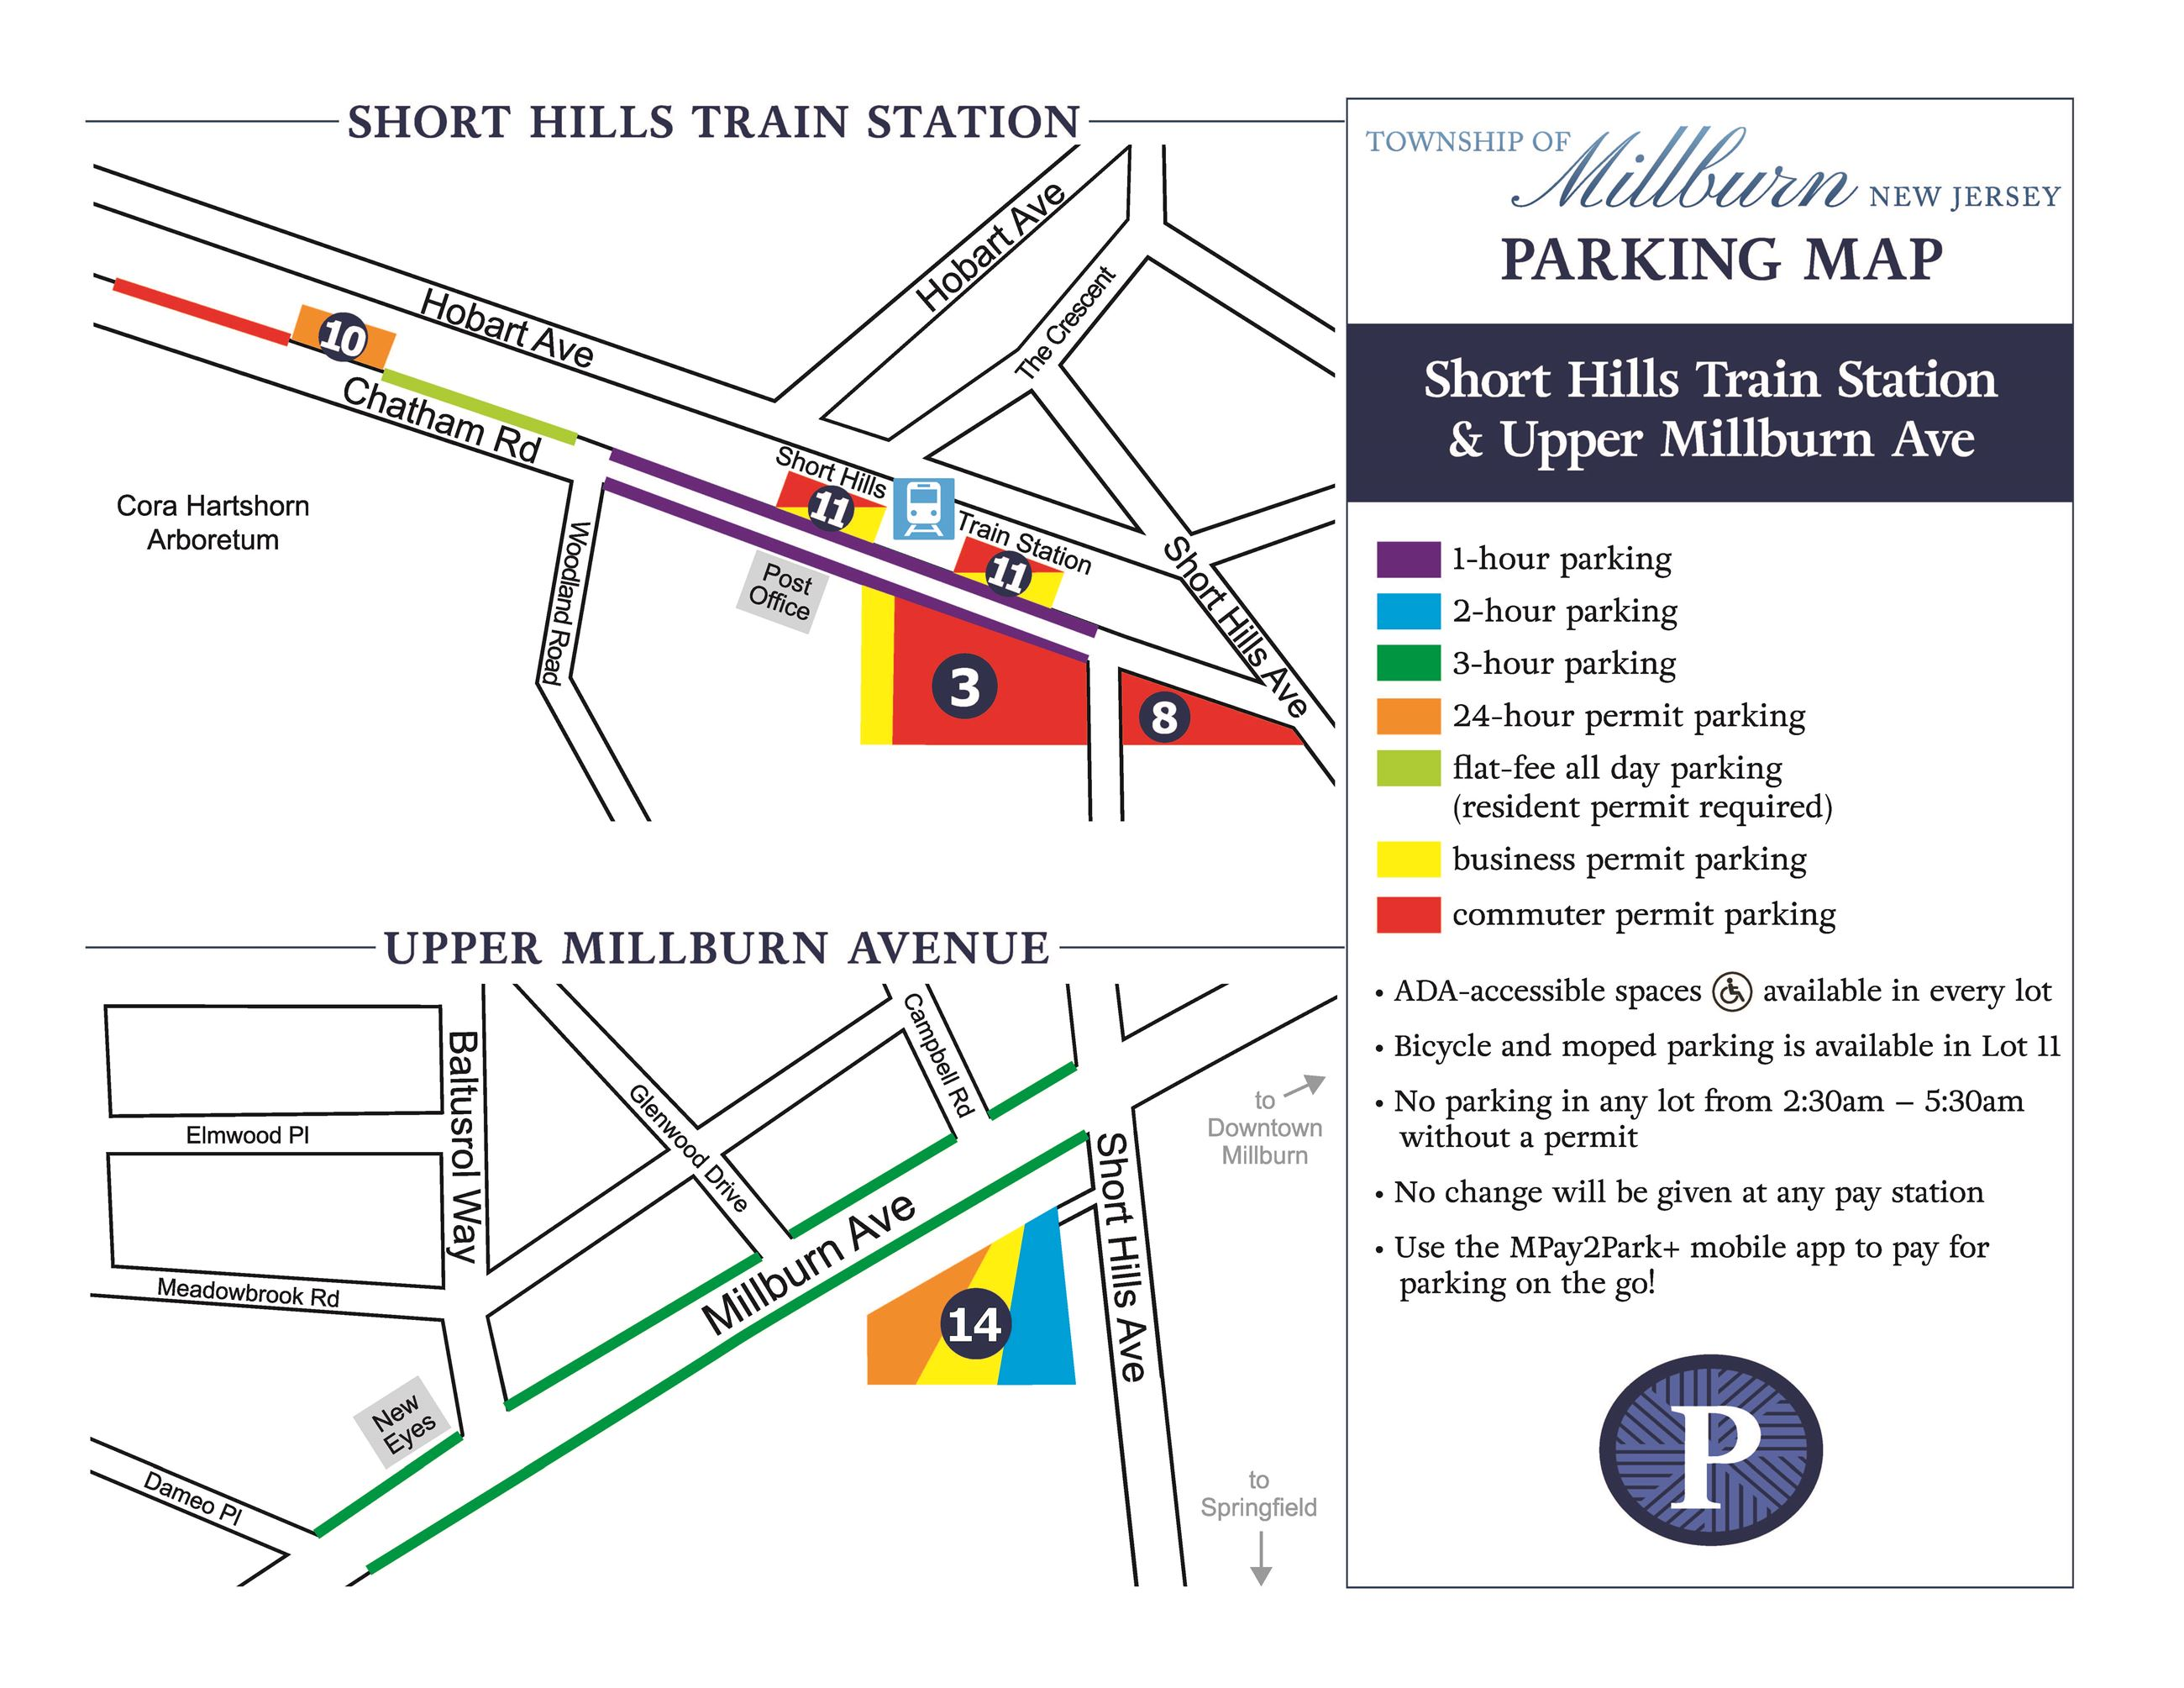 Short Hills Train Station and Upper Millburn Avenue Parking Map